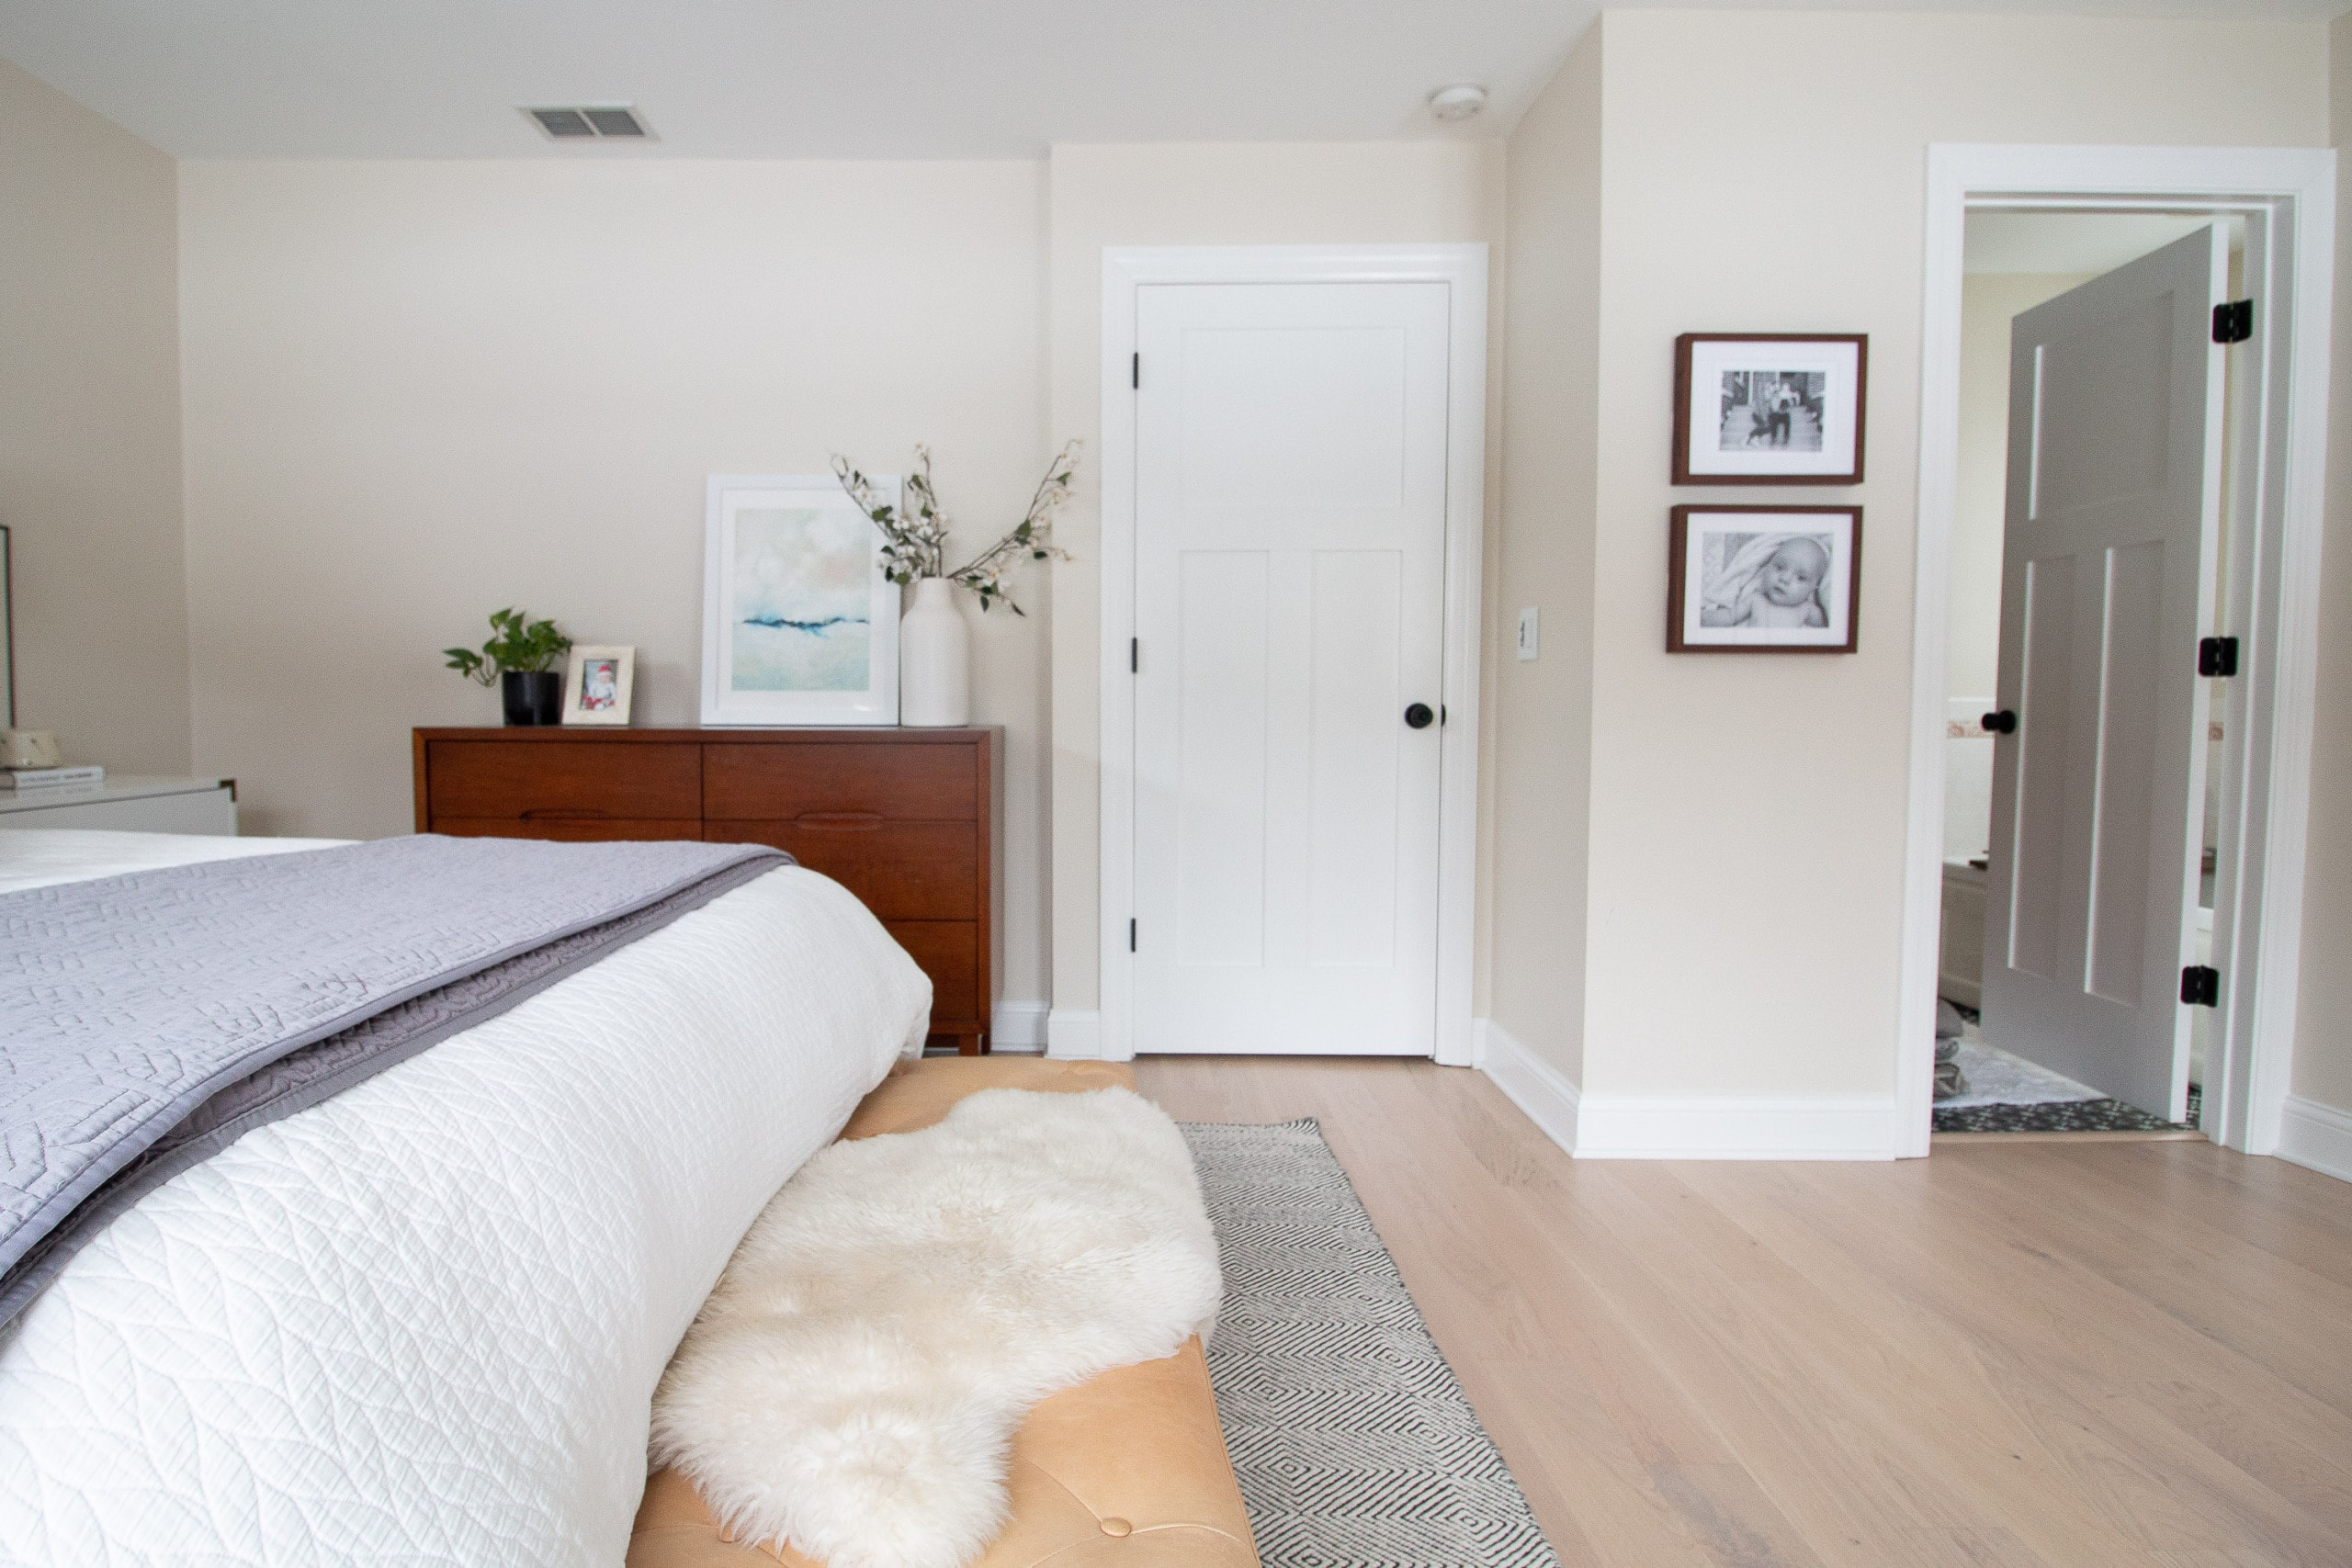 FIguring out our bedroom design